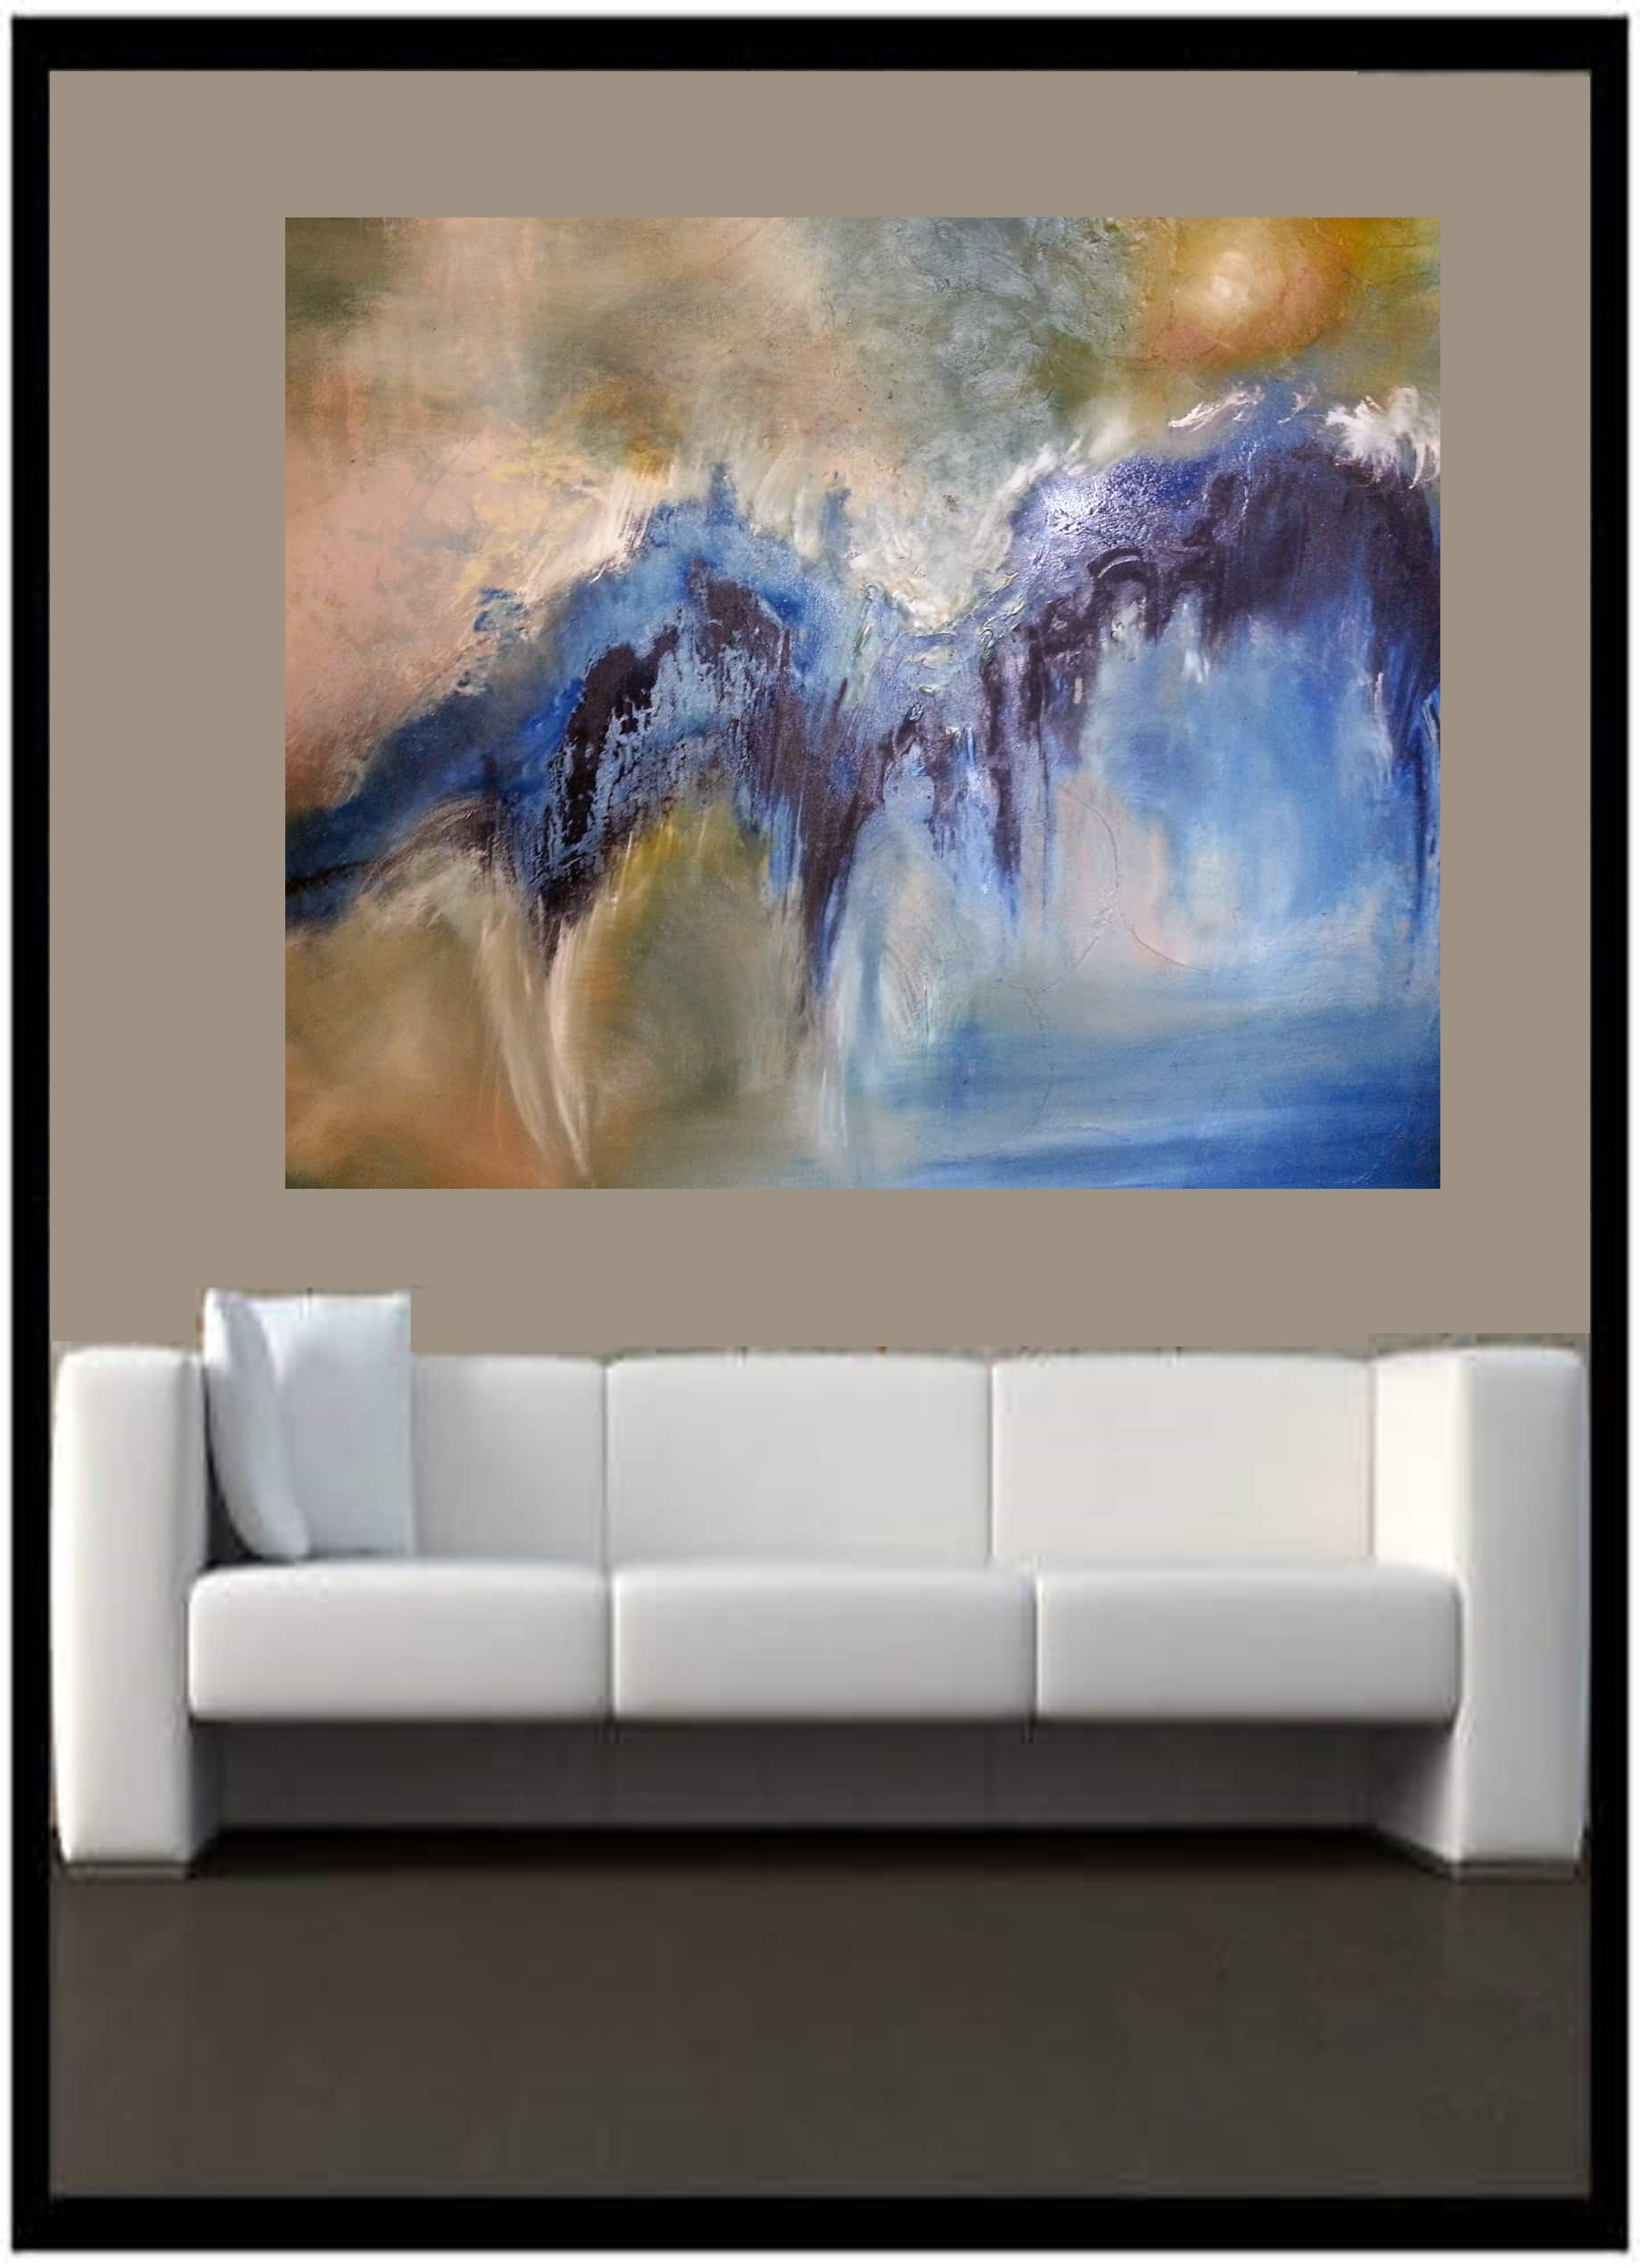 """Oil on Canvas Titled : """"Ambiguous Wave with Landscape""""by Artist Todd Krasovetz 56 x 72 inches"""